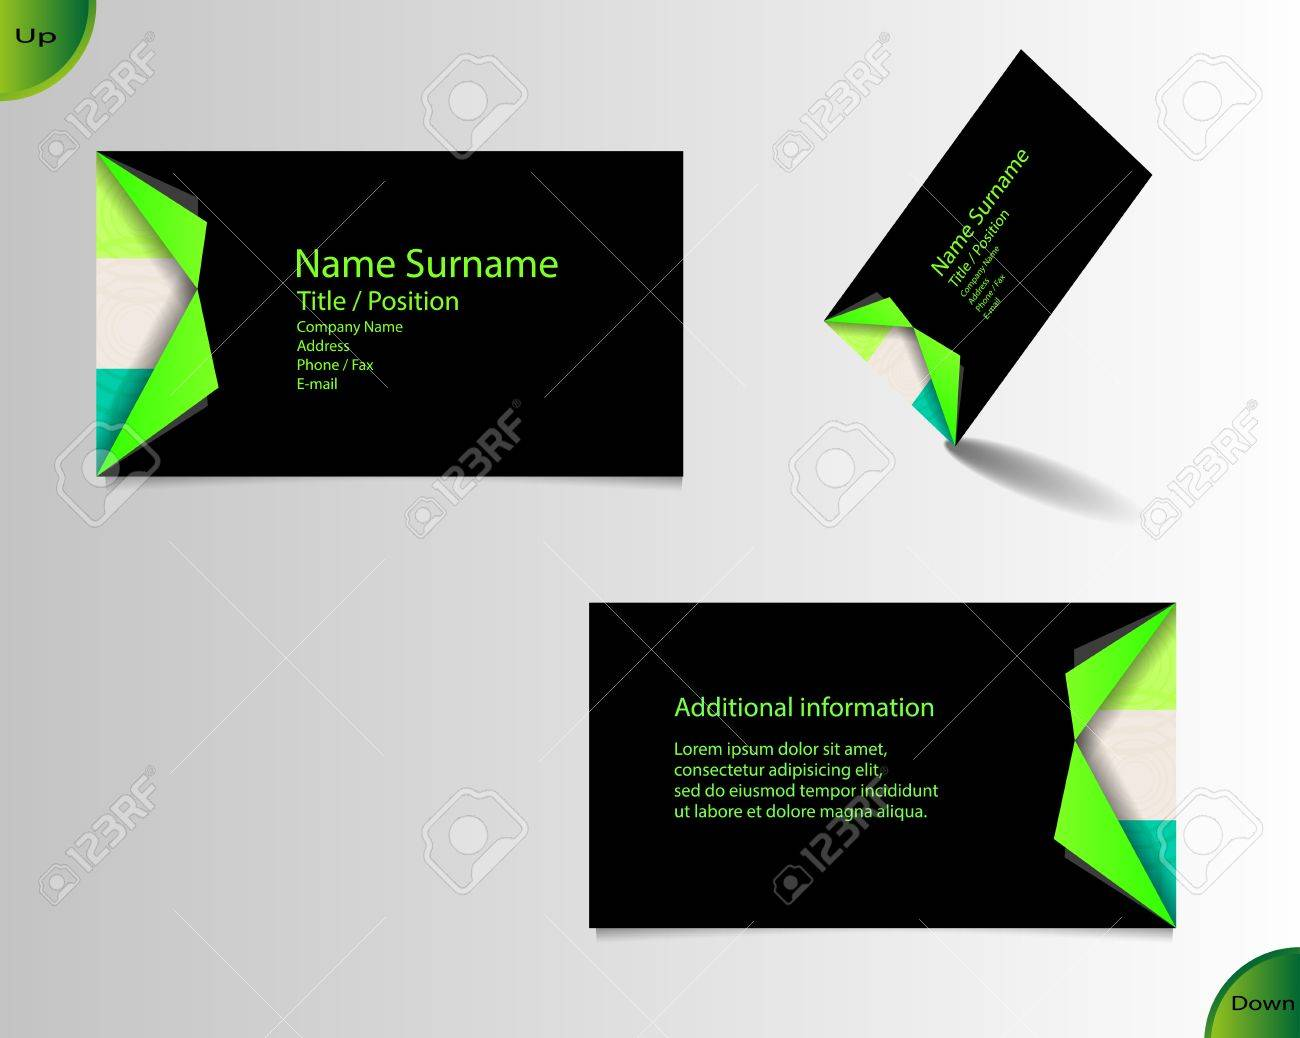 Business Card Layout With Modern Colors And Ornaments With Two